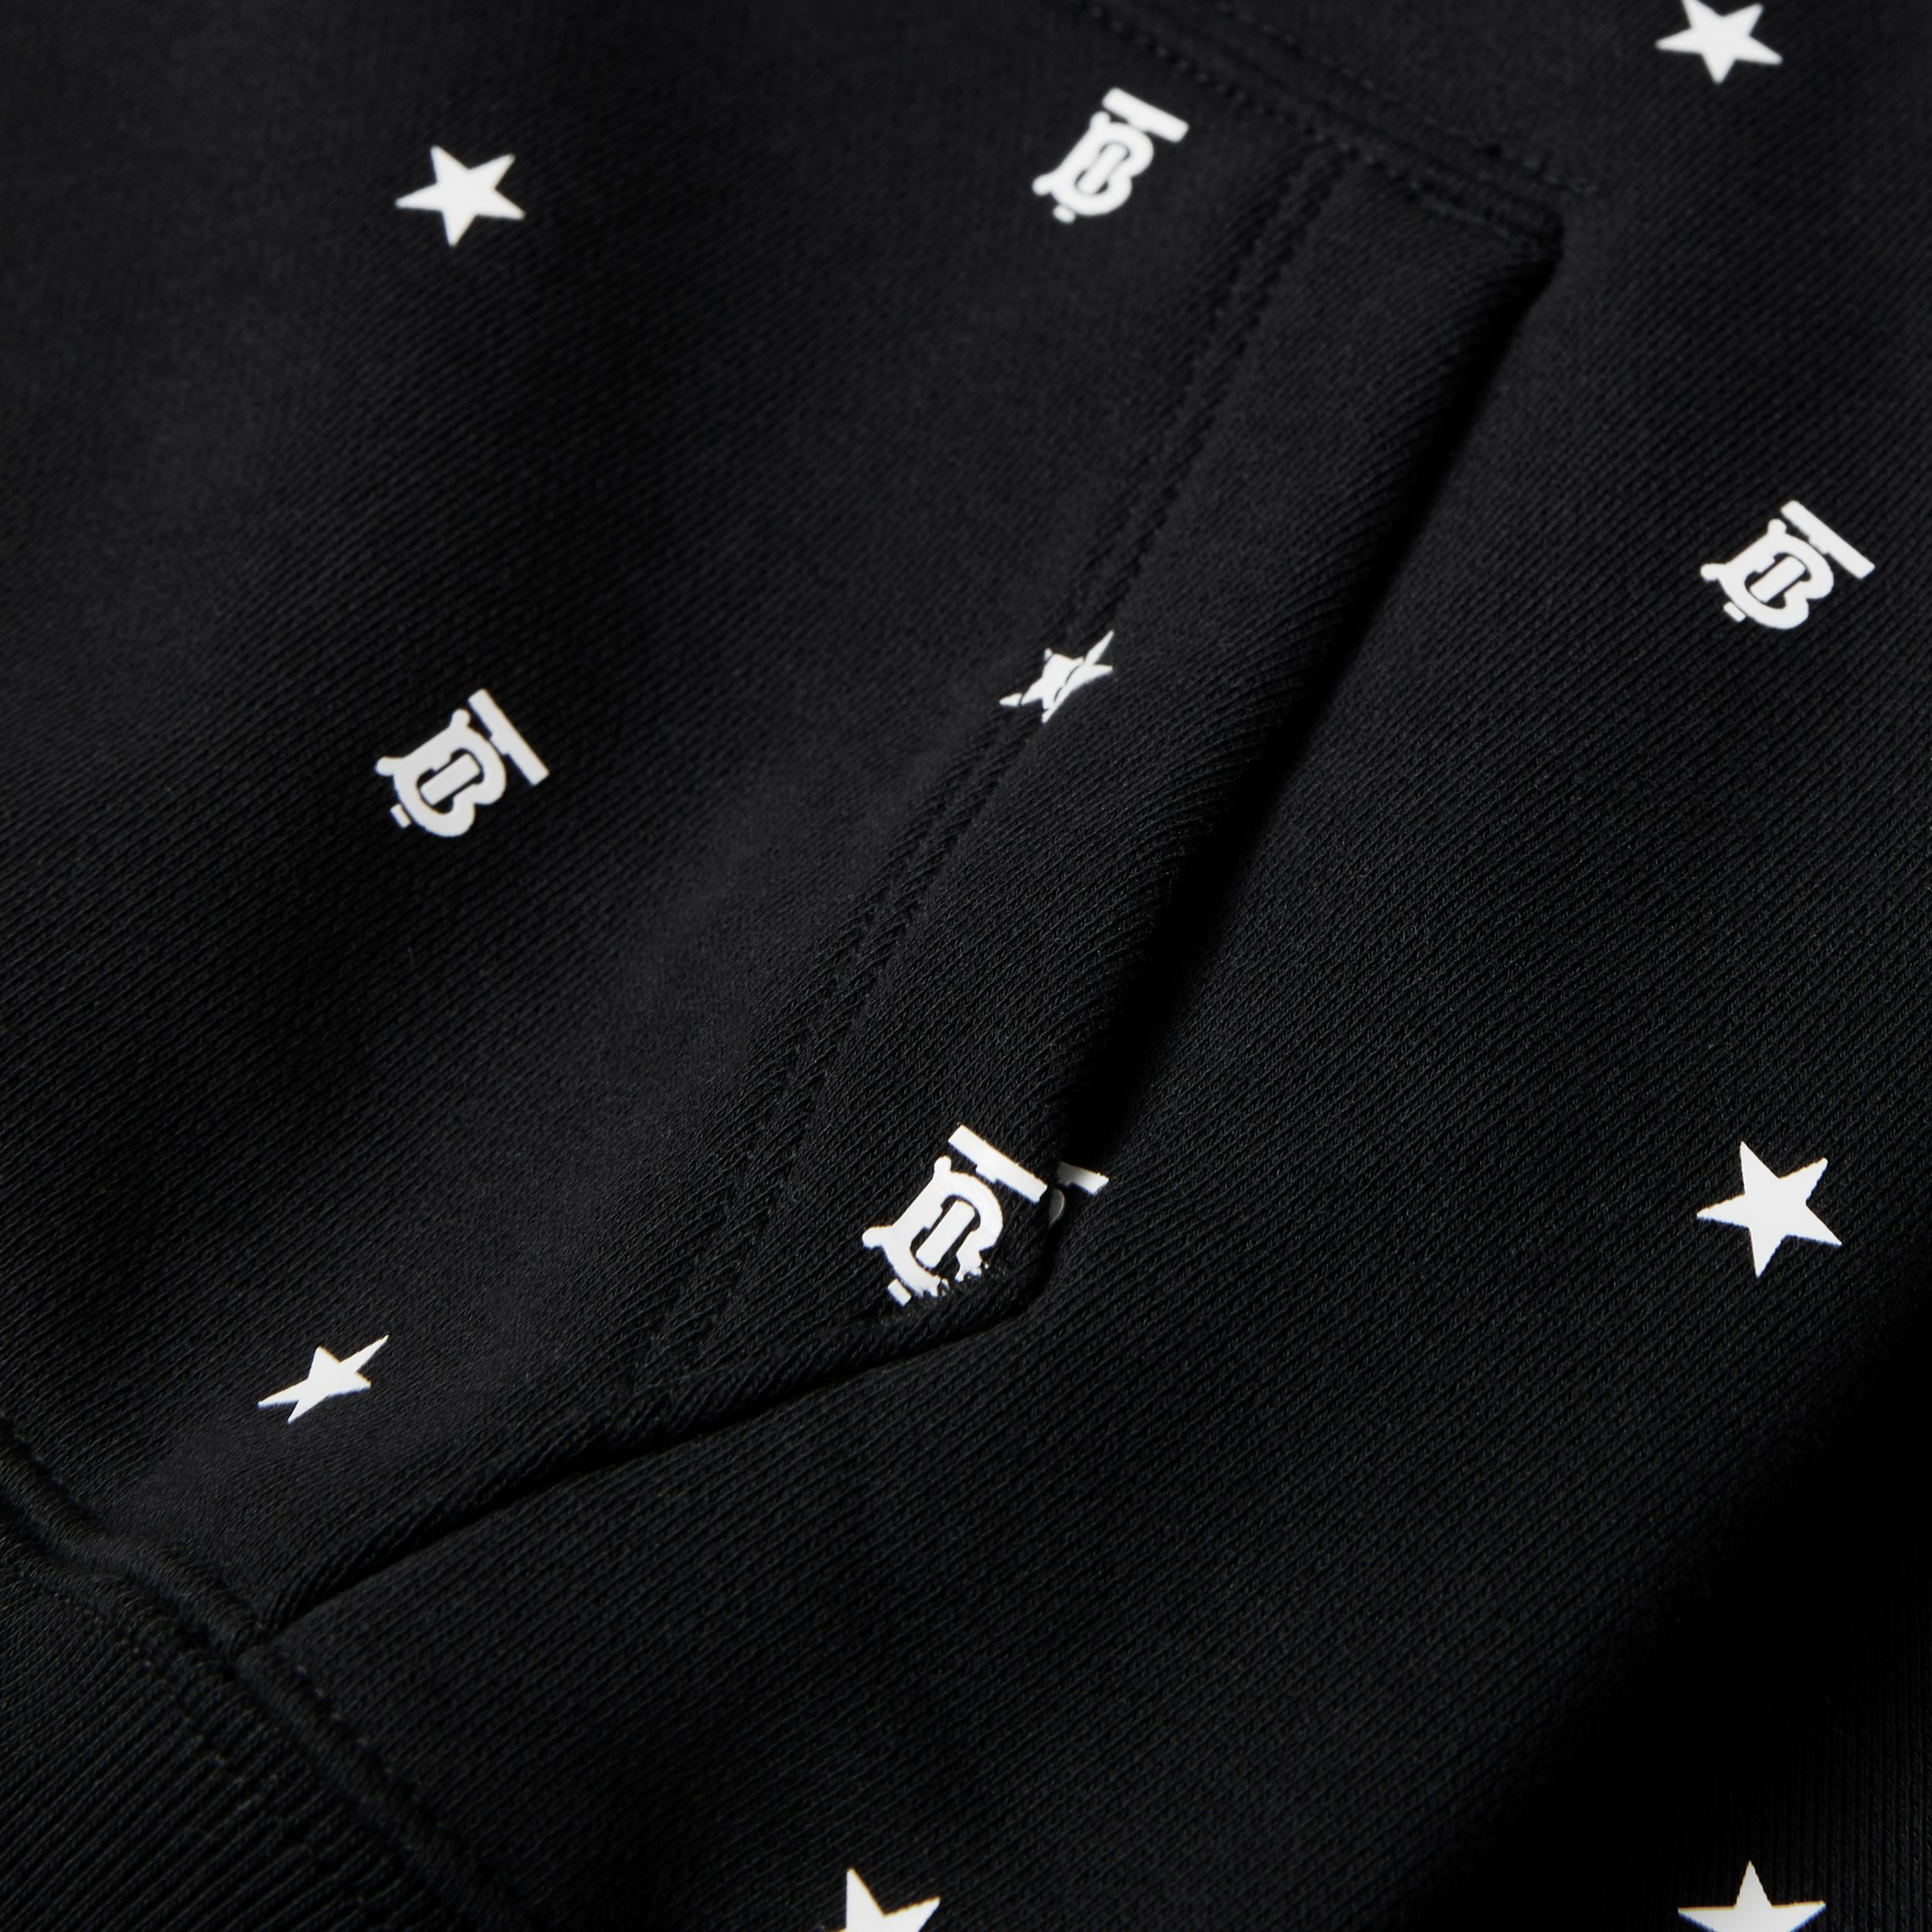 Star and Monogram Motif Cotton Sweatshirt in Black | Burberry - 2